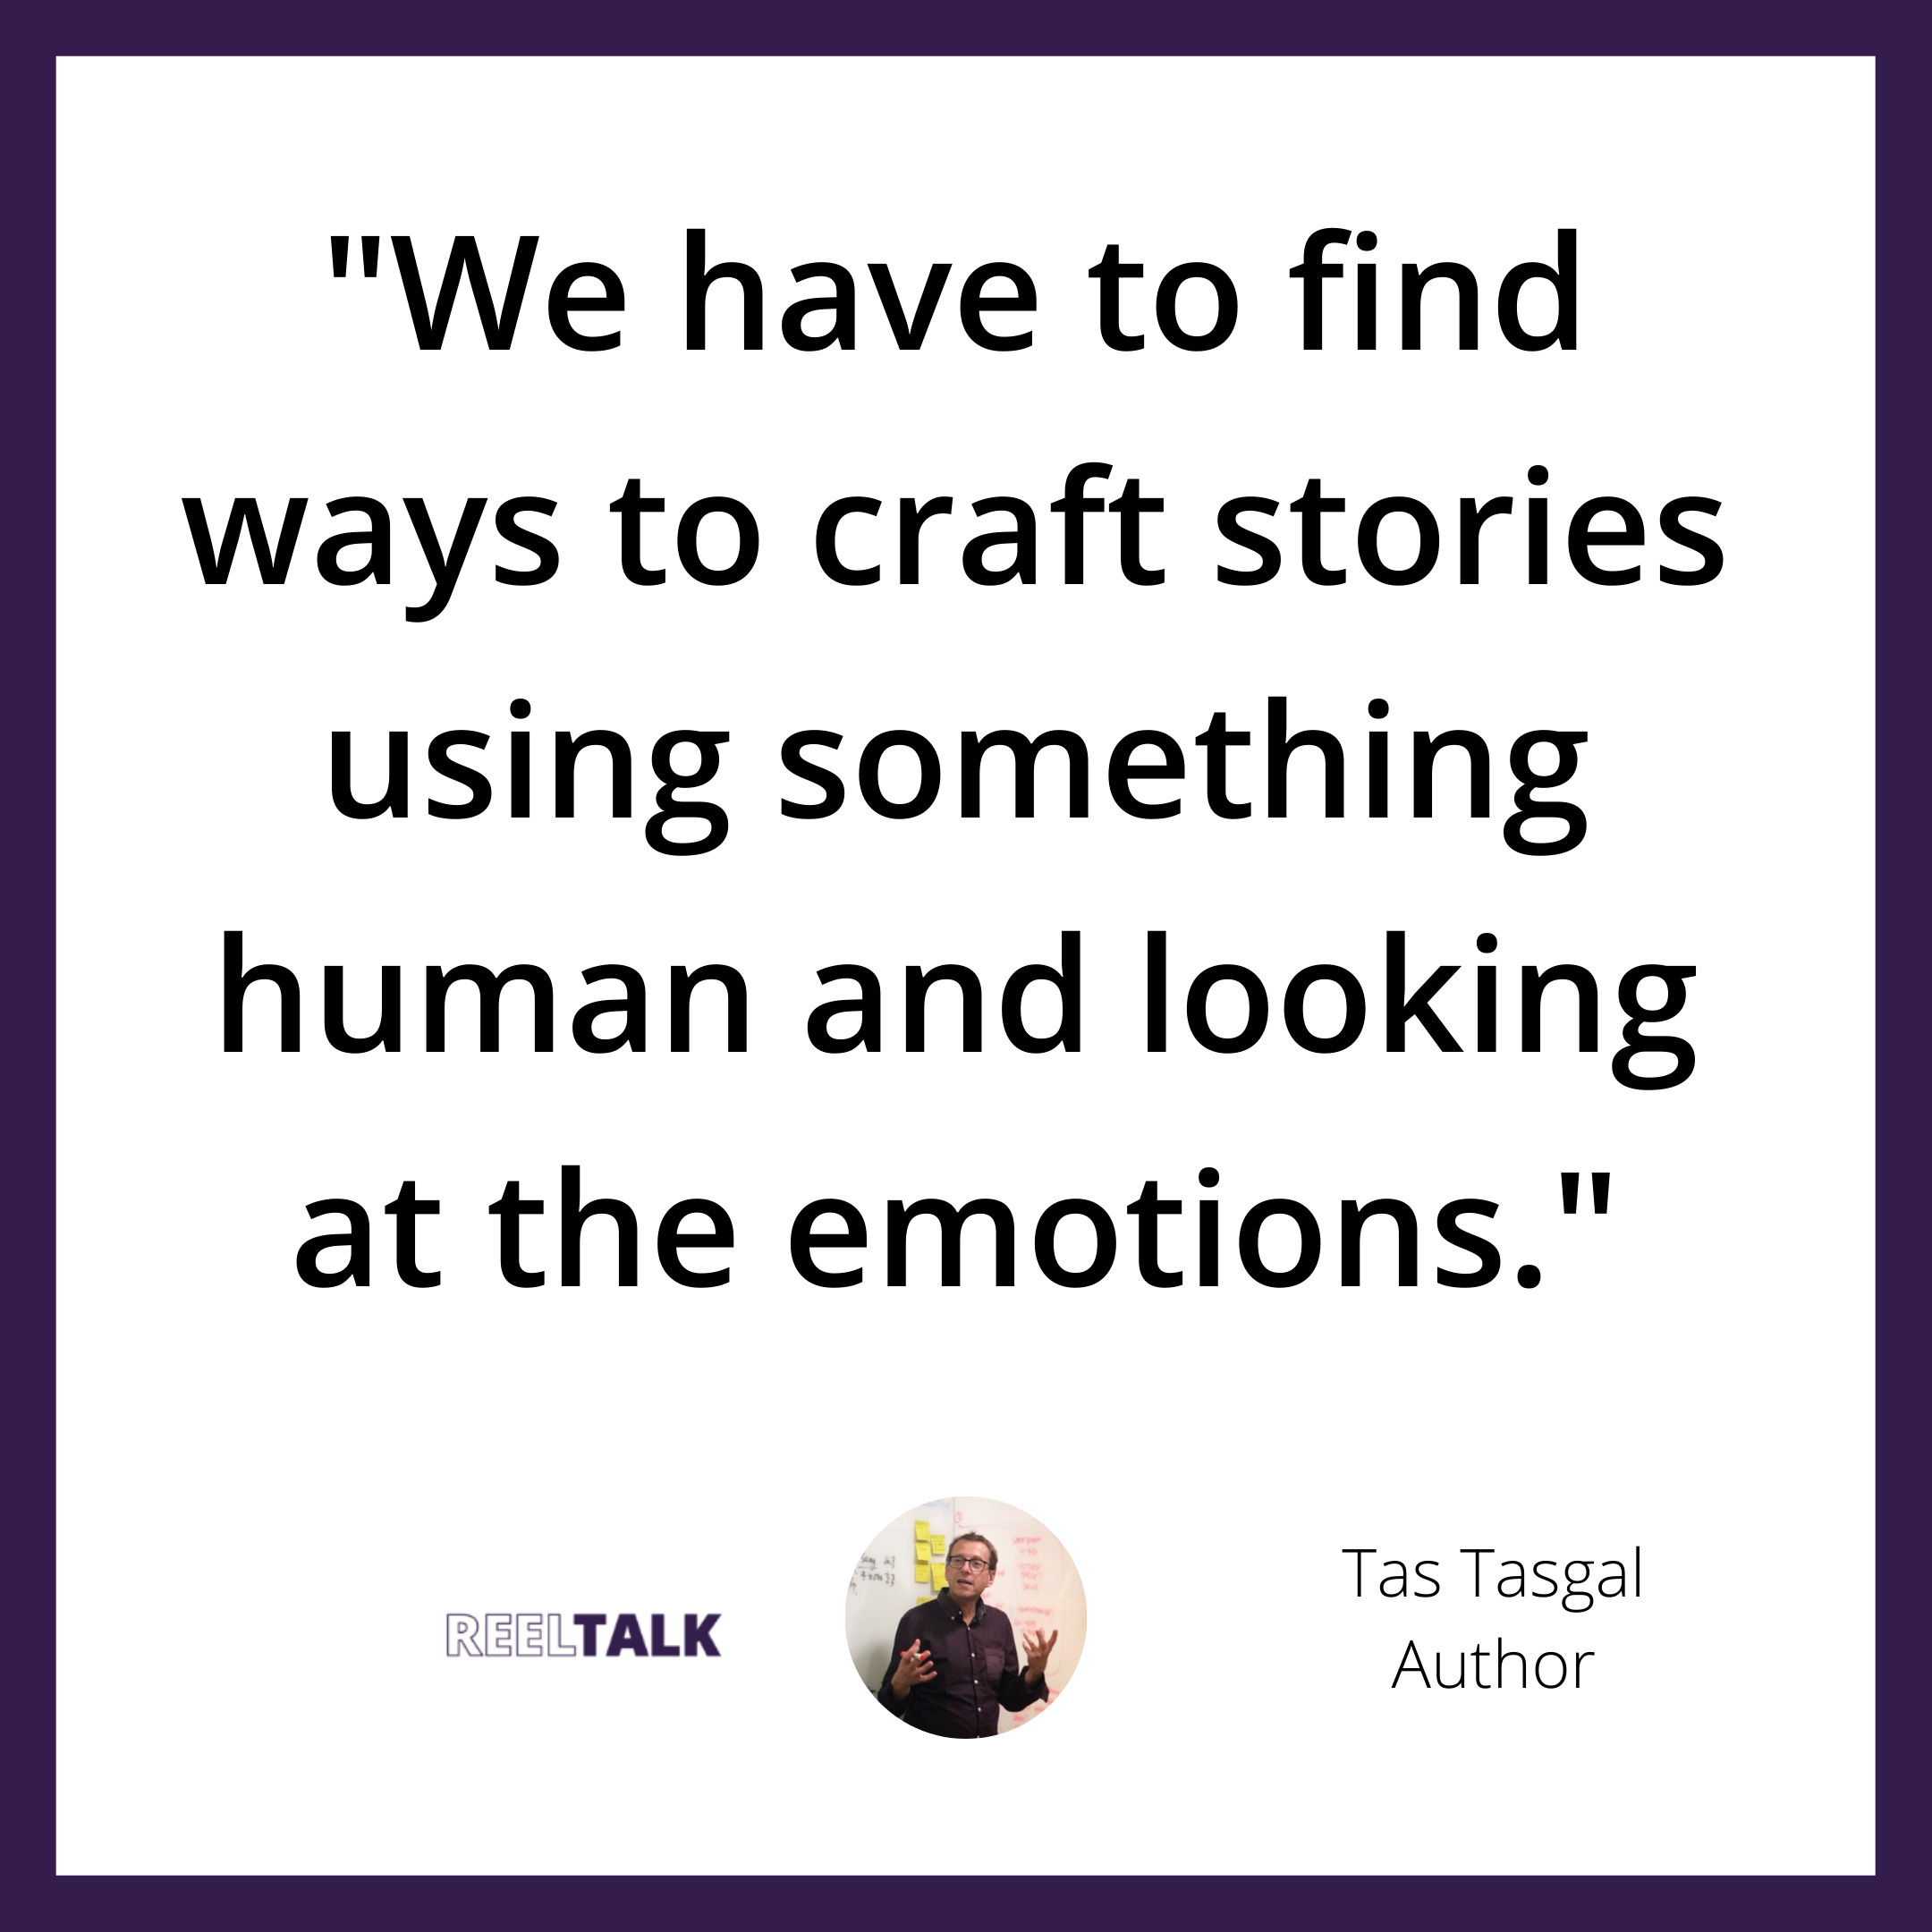 We have to find ways to craft stories using something human and looking at the emotions.